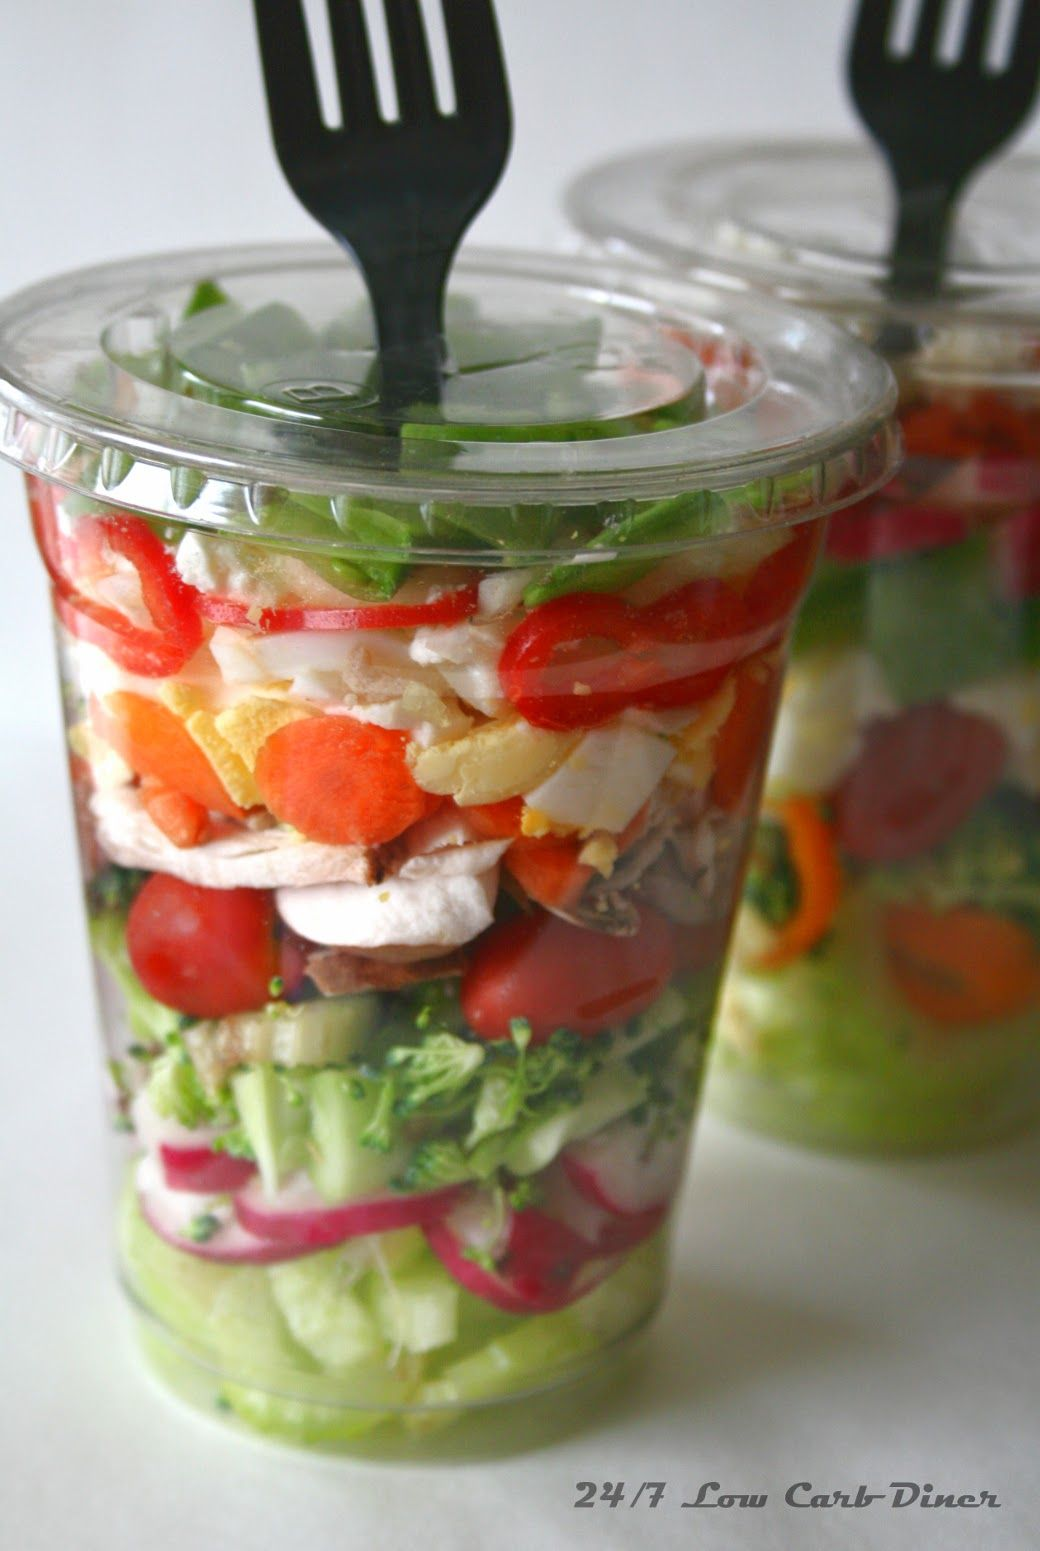 TRY THIS: Think Outside of the Box for Lunches | Healthy